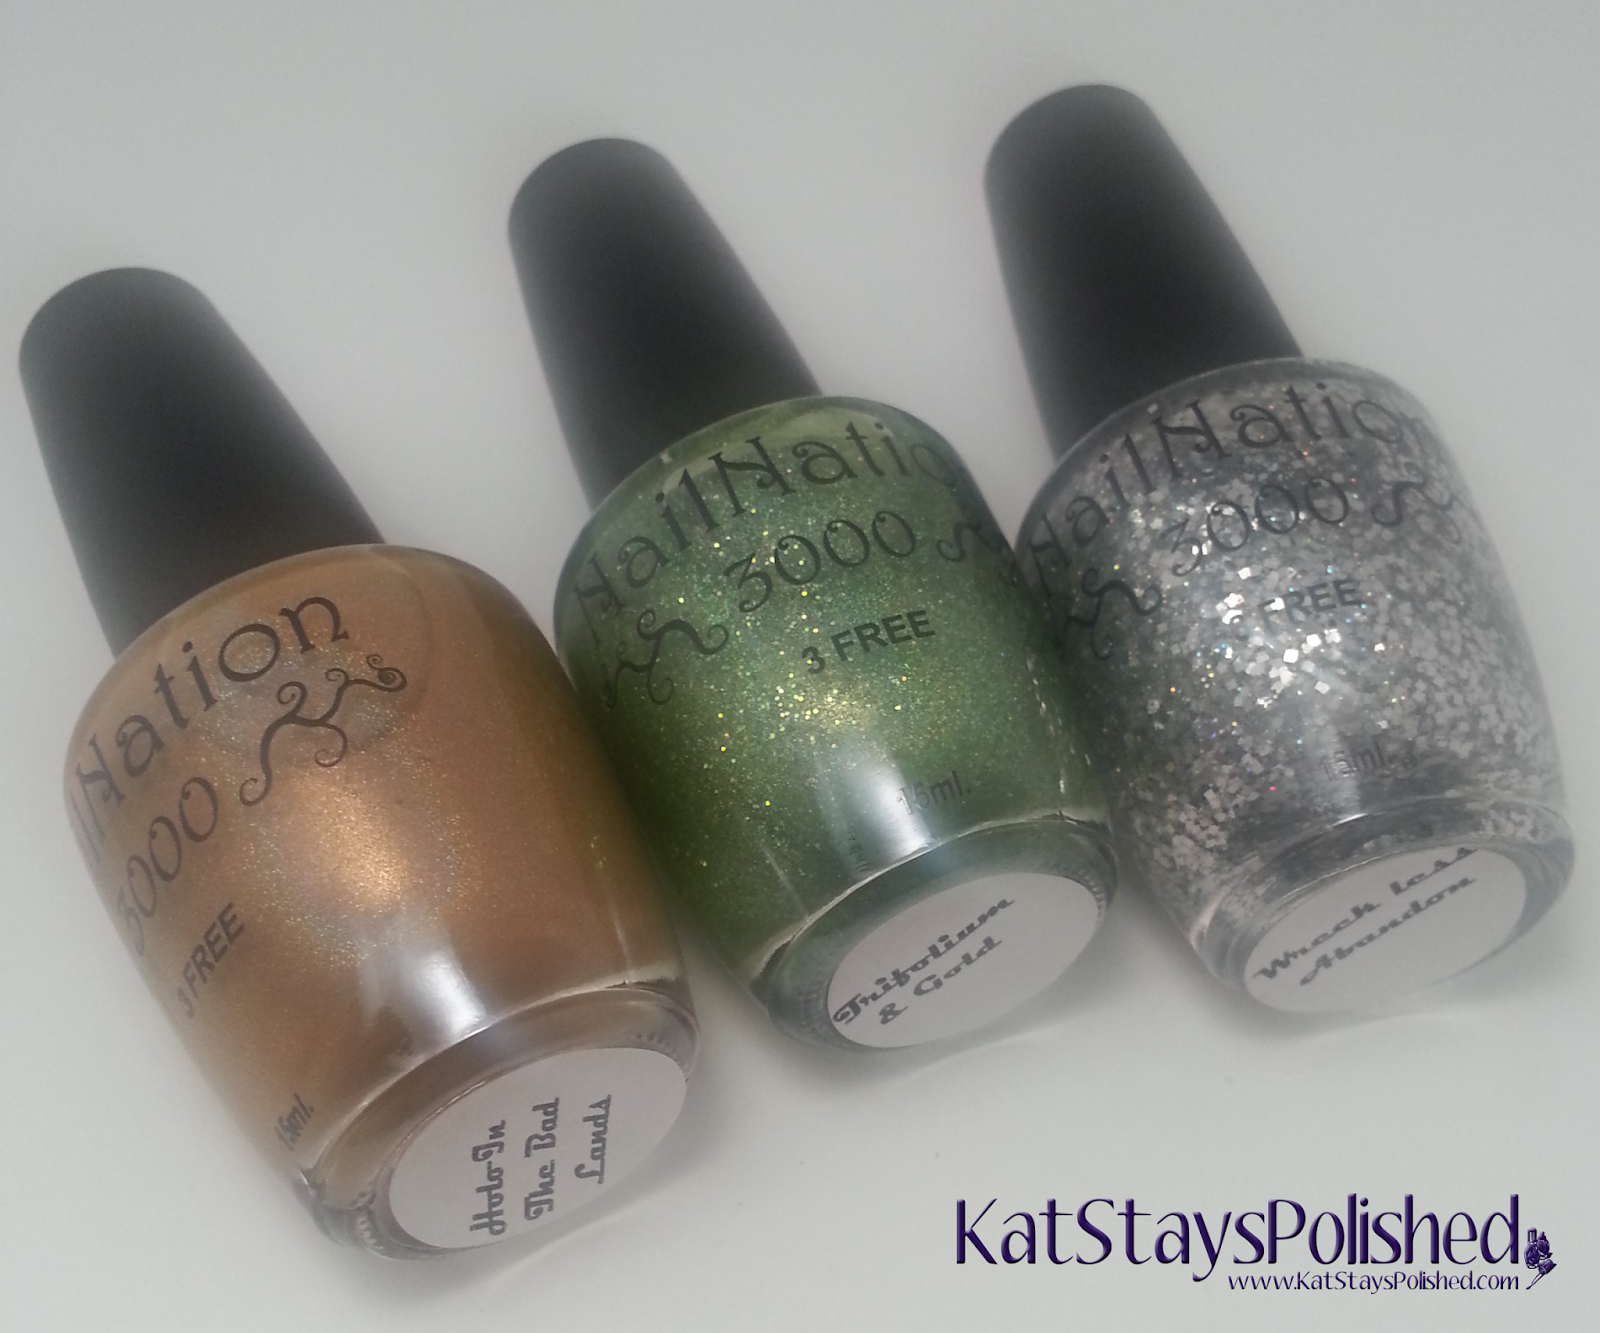 NailNation3000 - Holo in the Bad Lands, Trifolium & Gold, and Wreckless Abandon | Kat Stays Polished